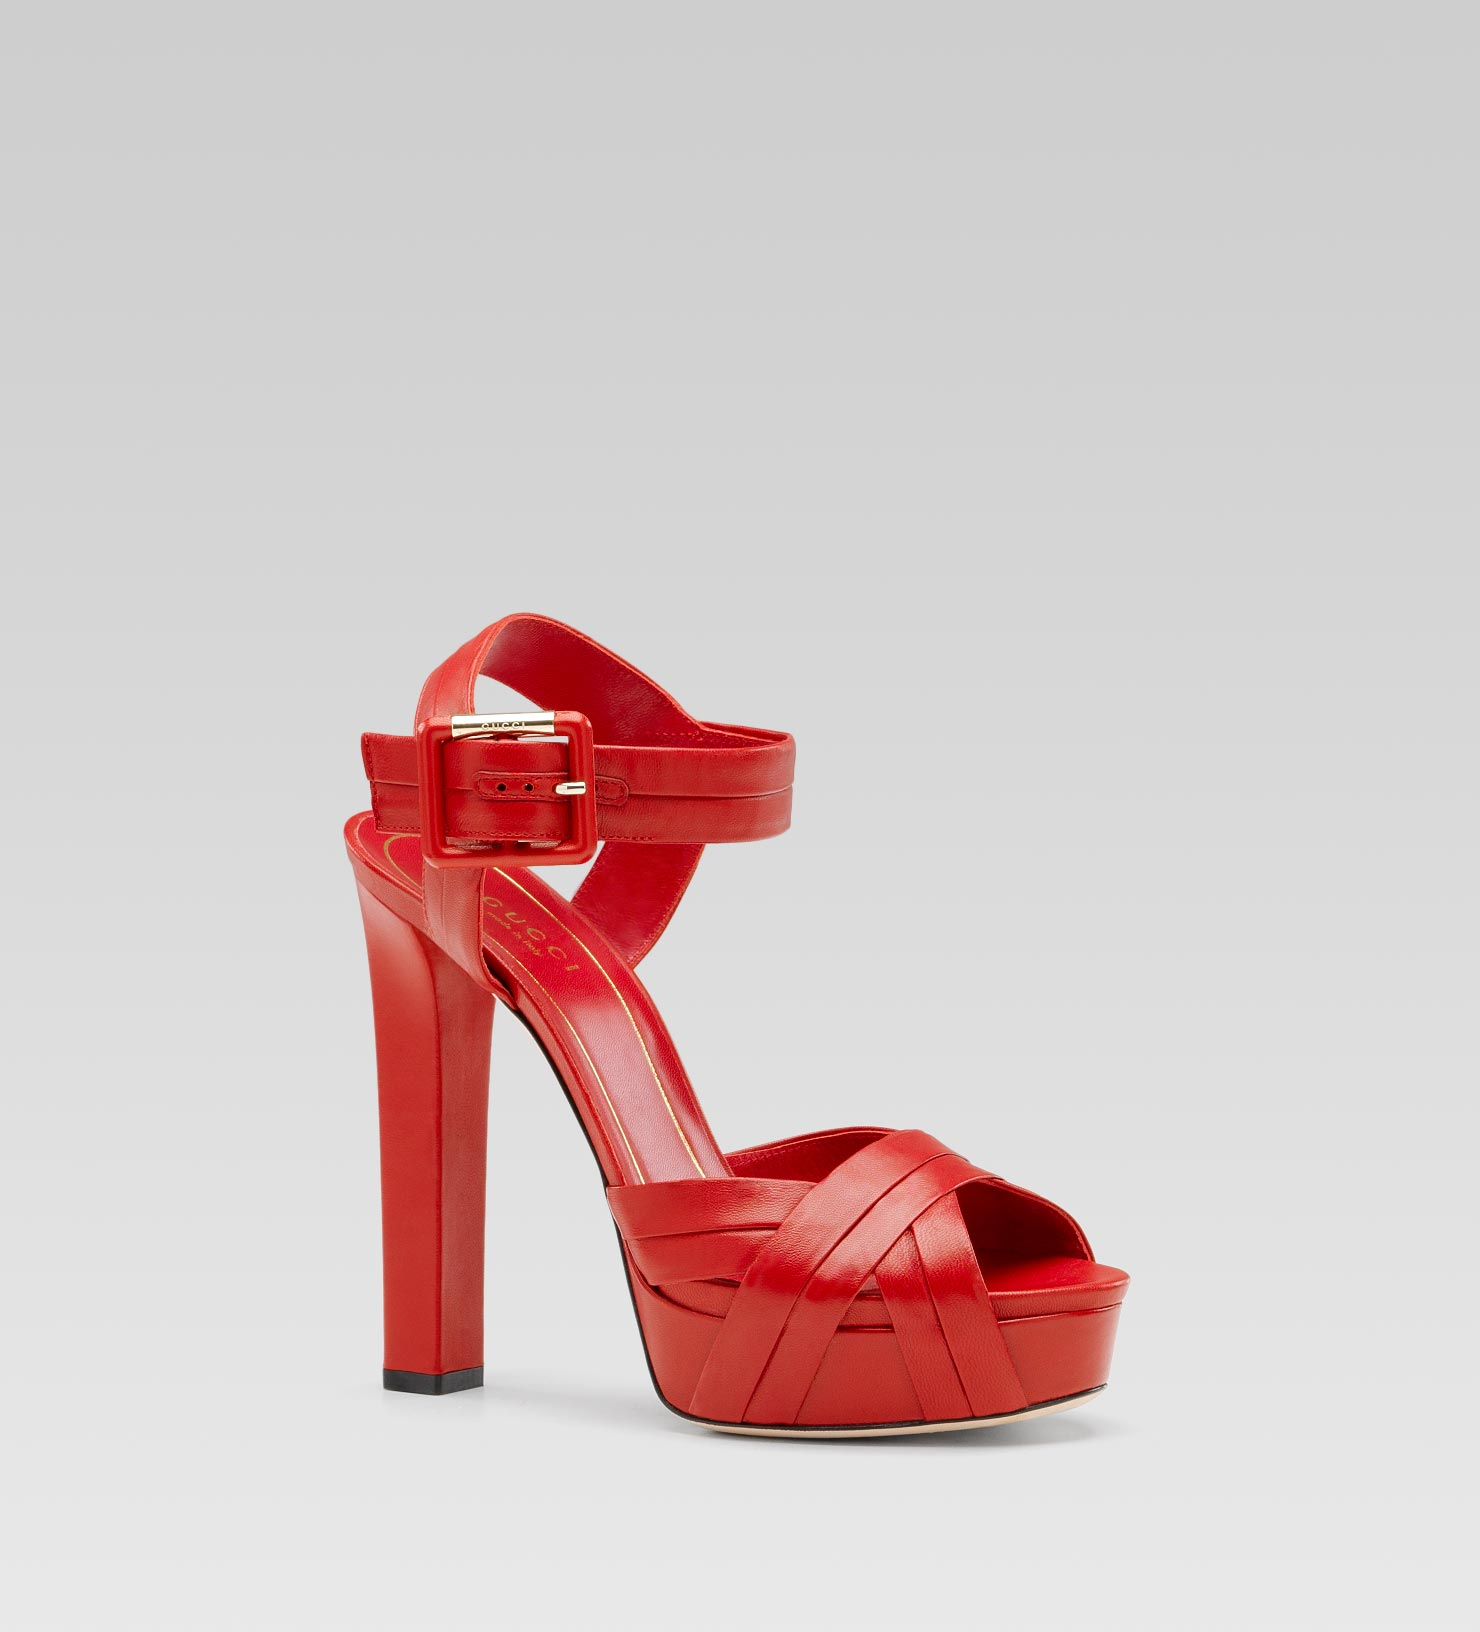 gucci jamie high heel platform sandal with ankle strap in red lyst. Black Bedroom Furniture Sets. Home Design Ideas